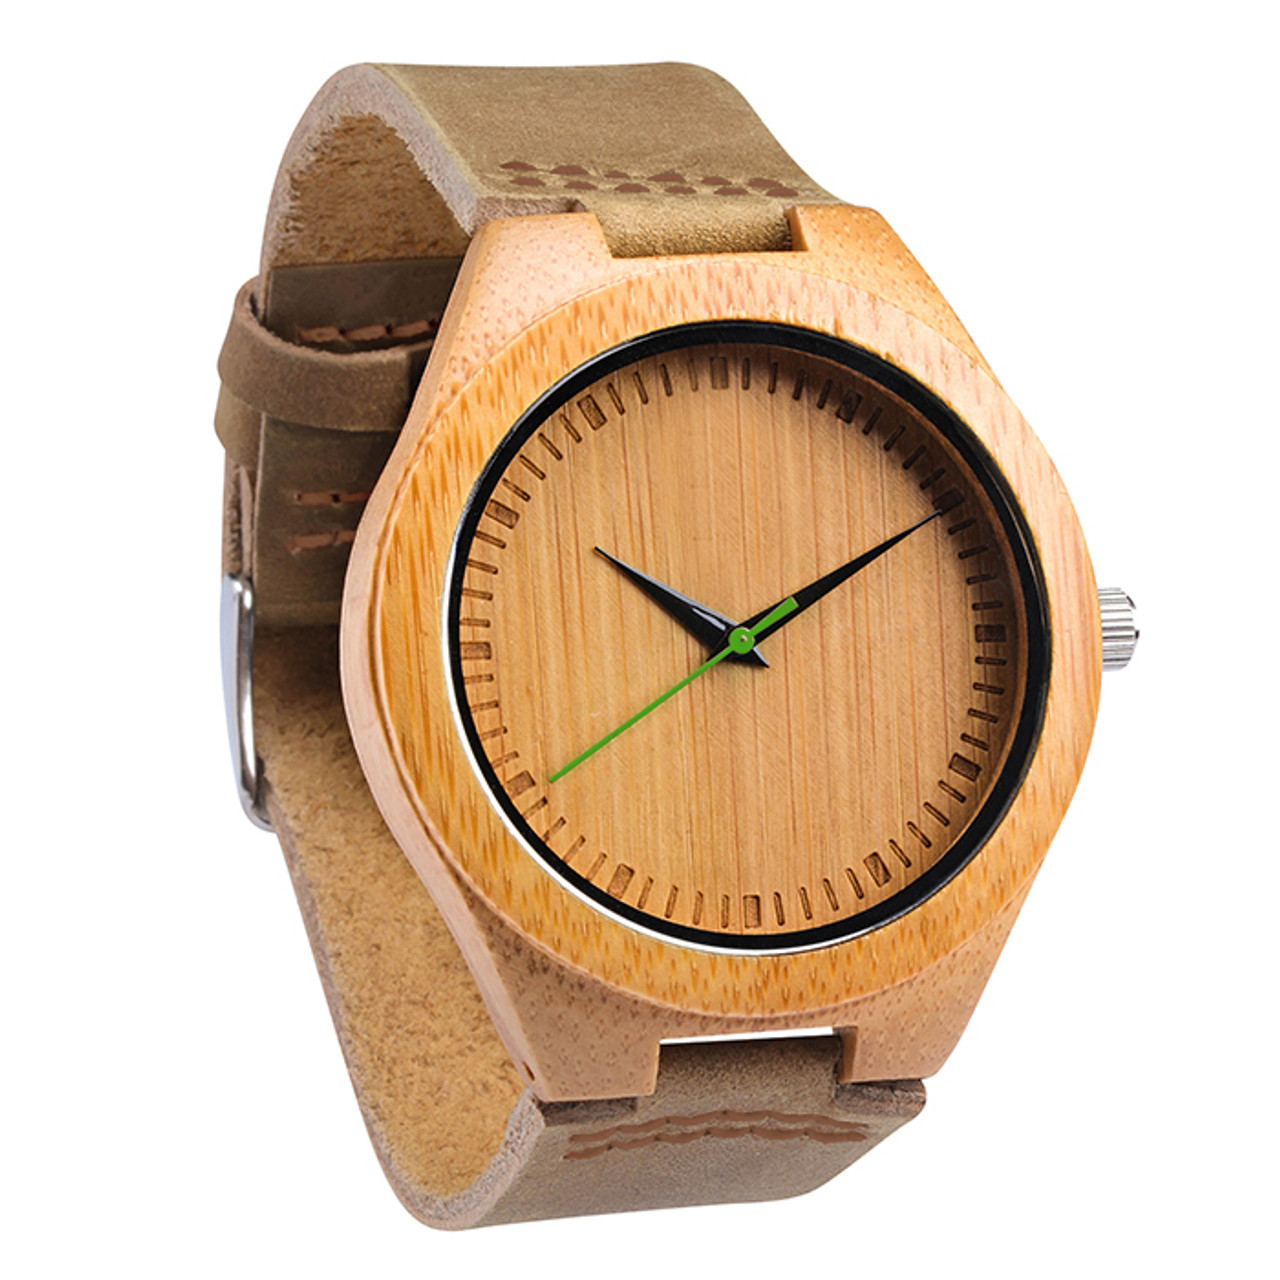 Grpn -Wood Engraved Watch W#63 - Verdent